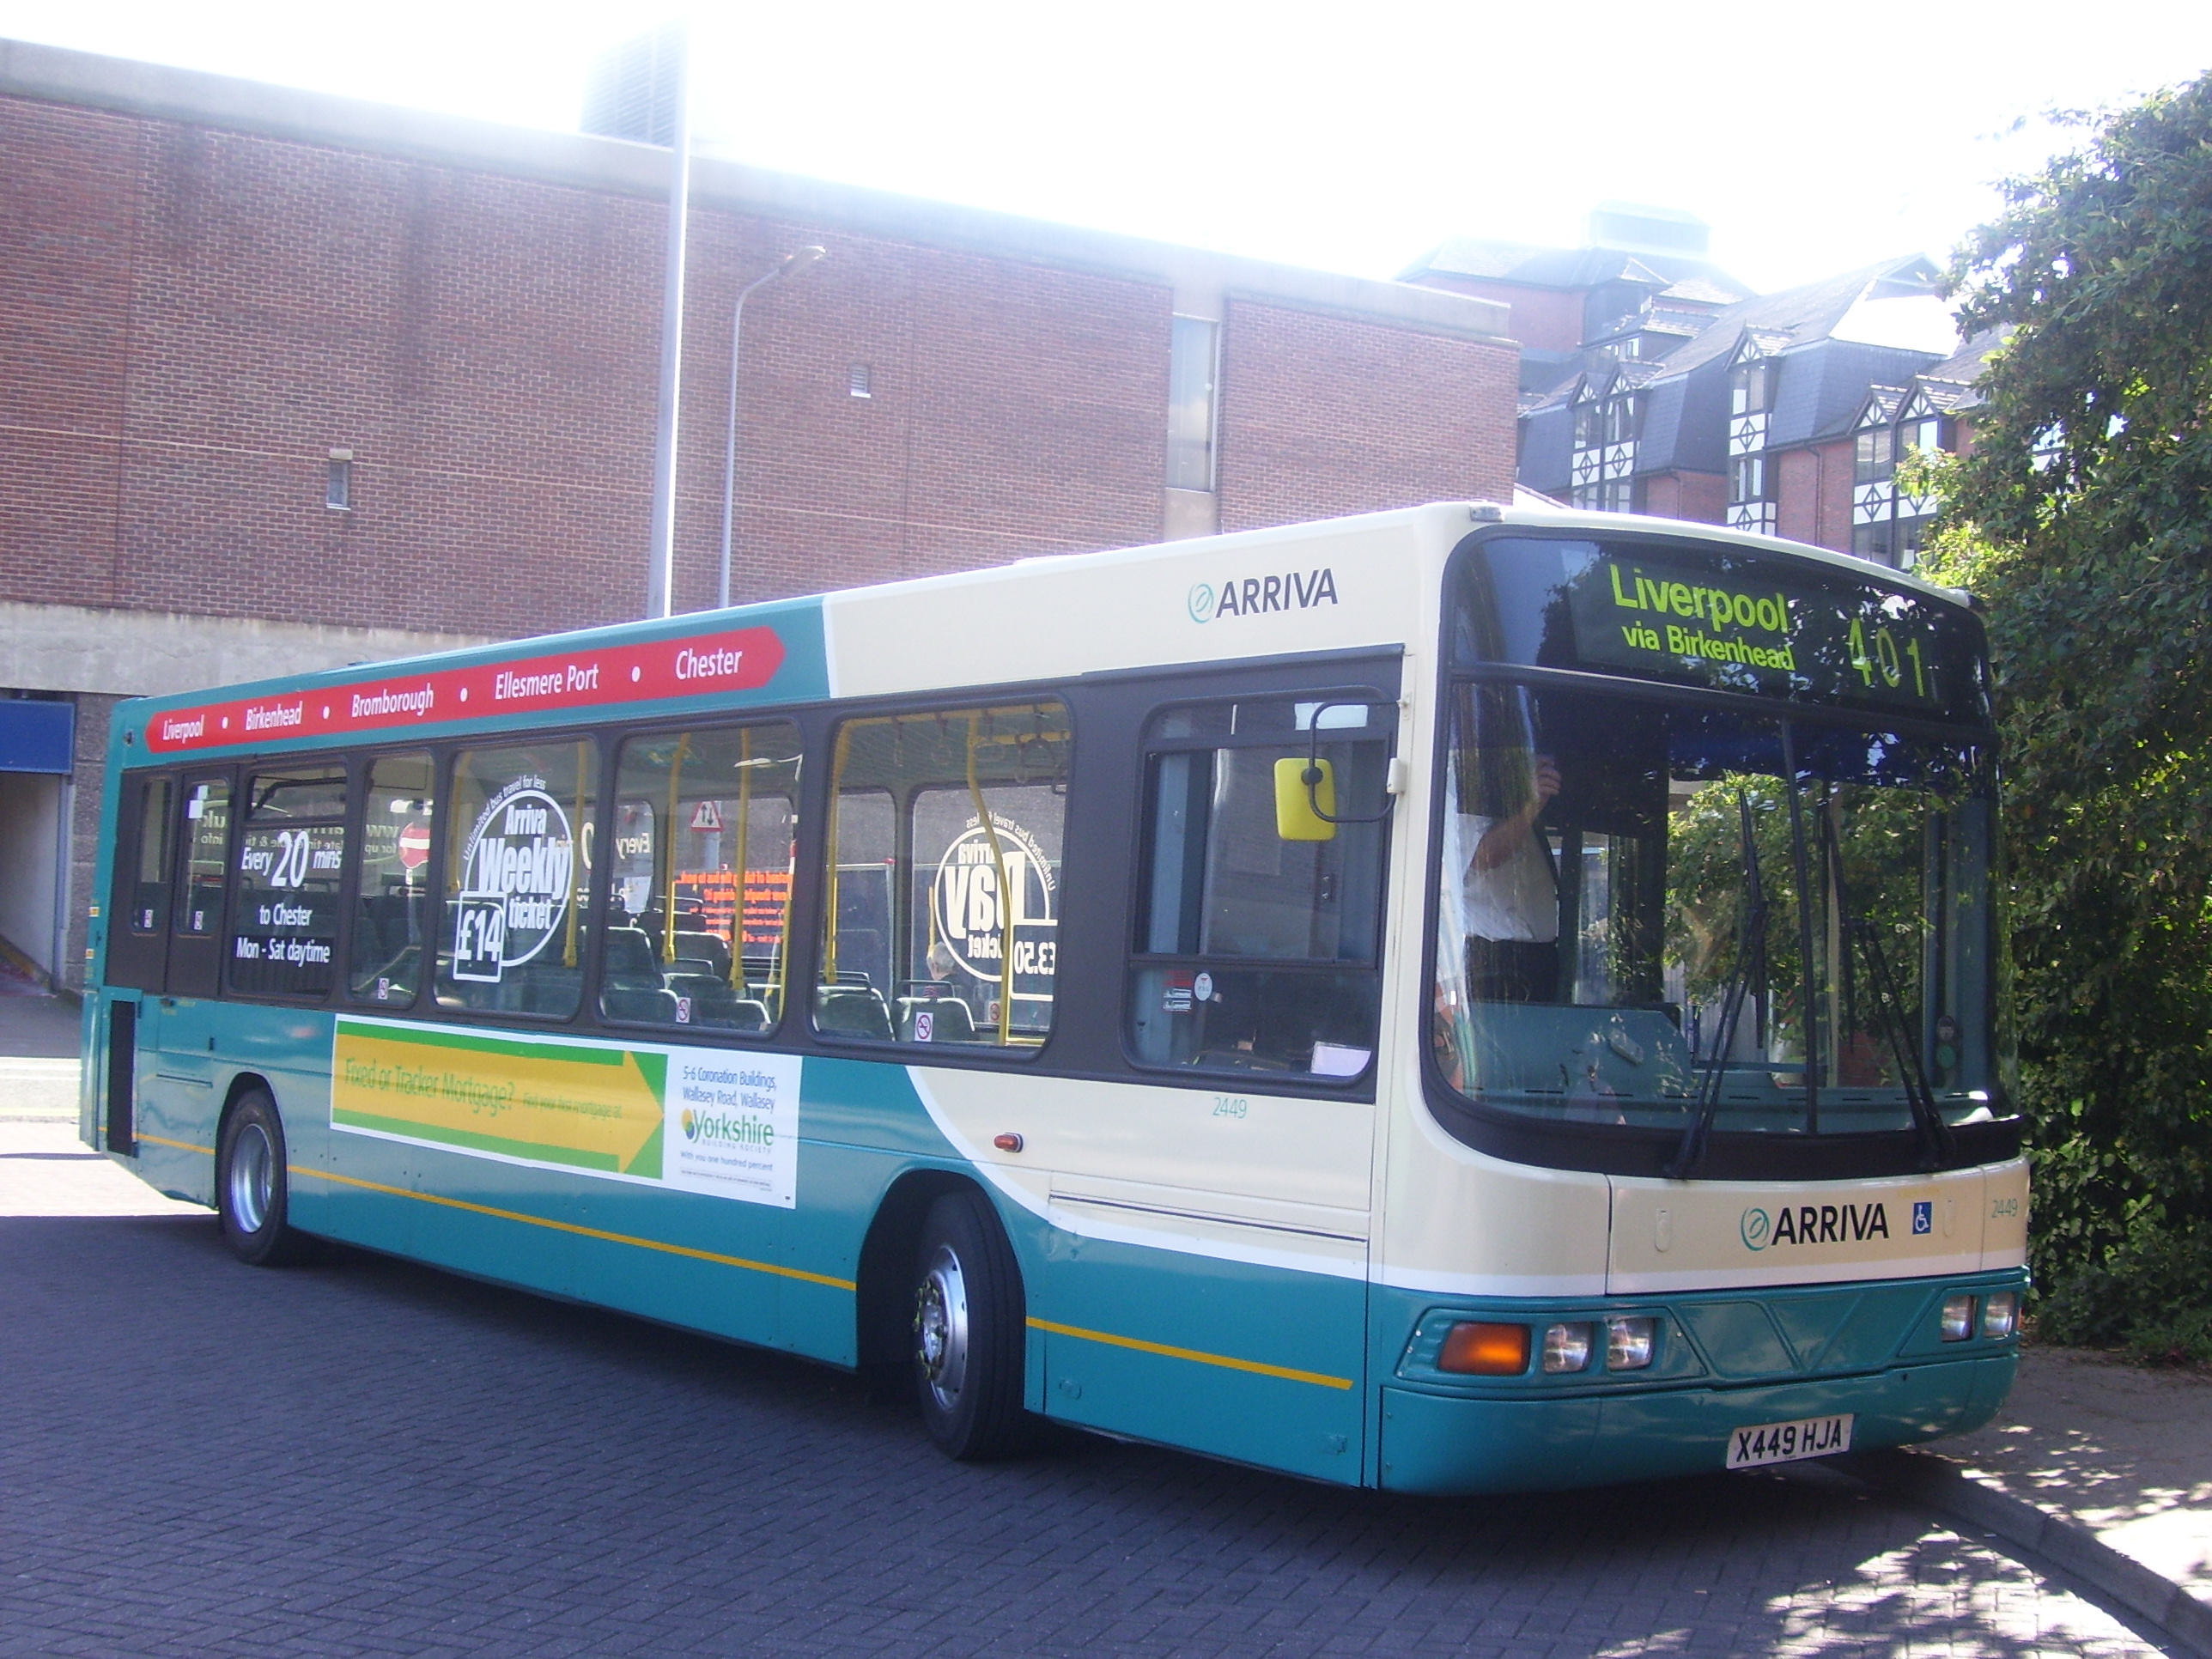 File:Arriva North West and Wales 2449.jpg